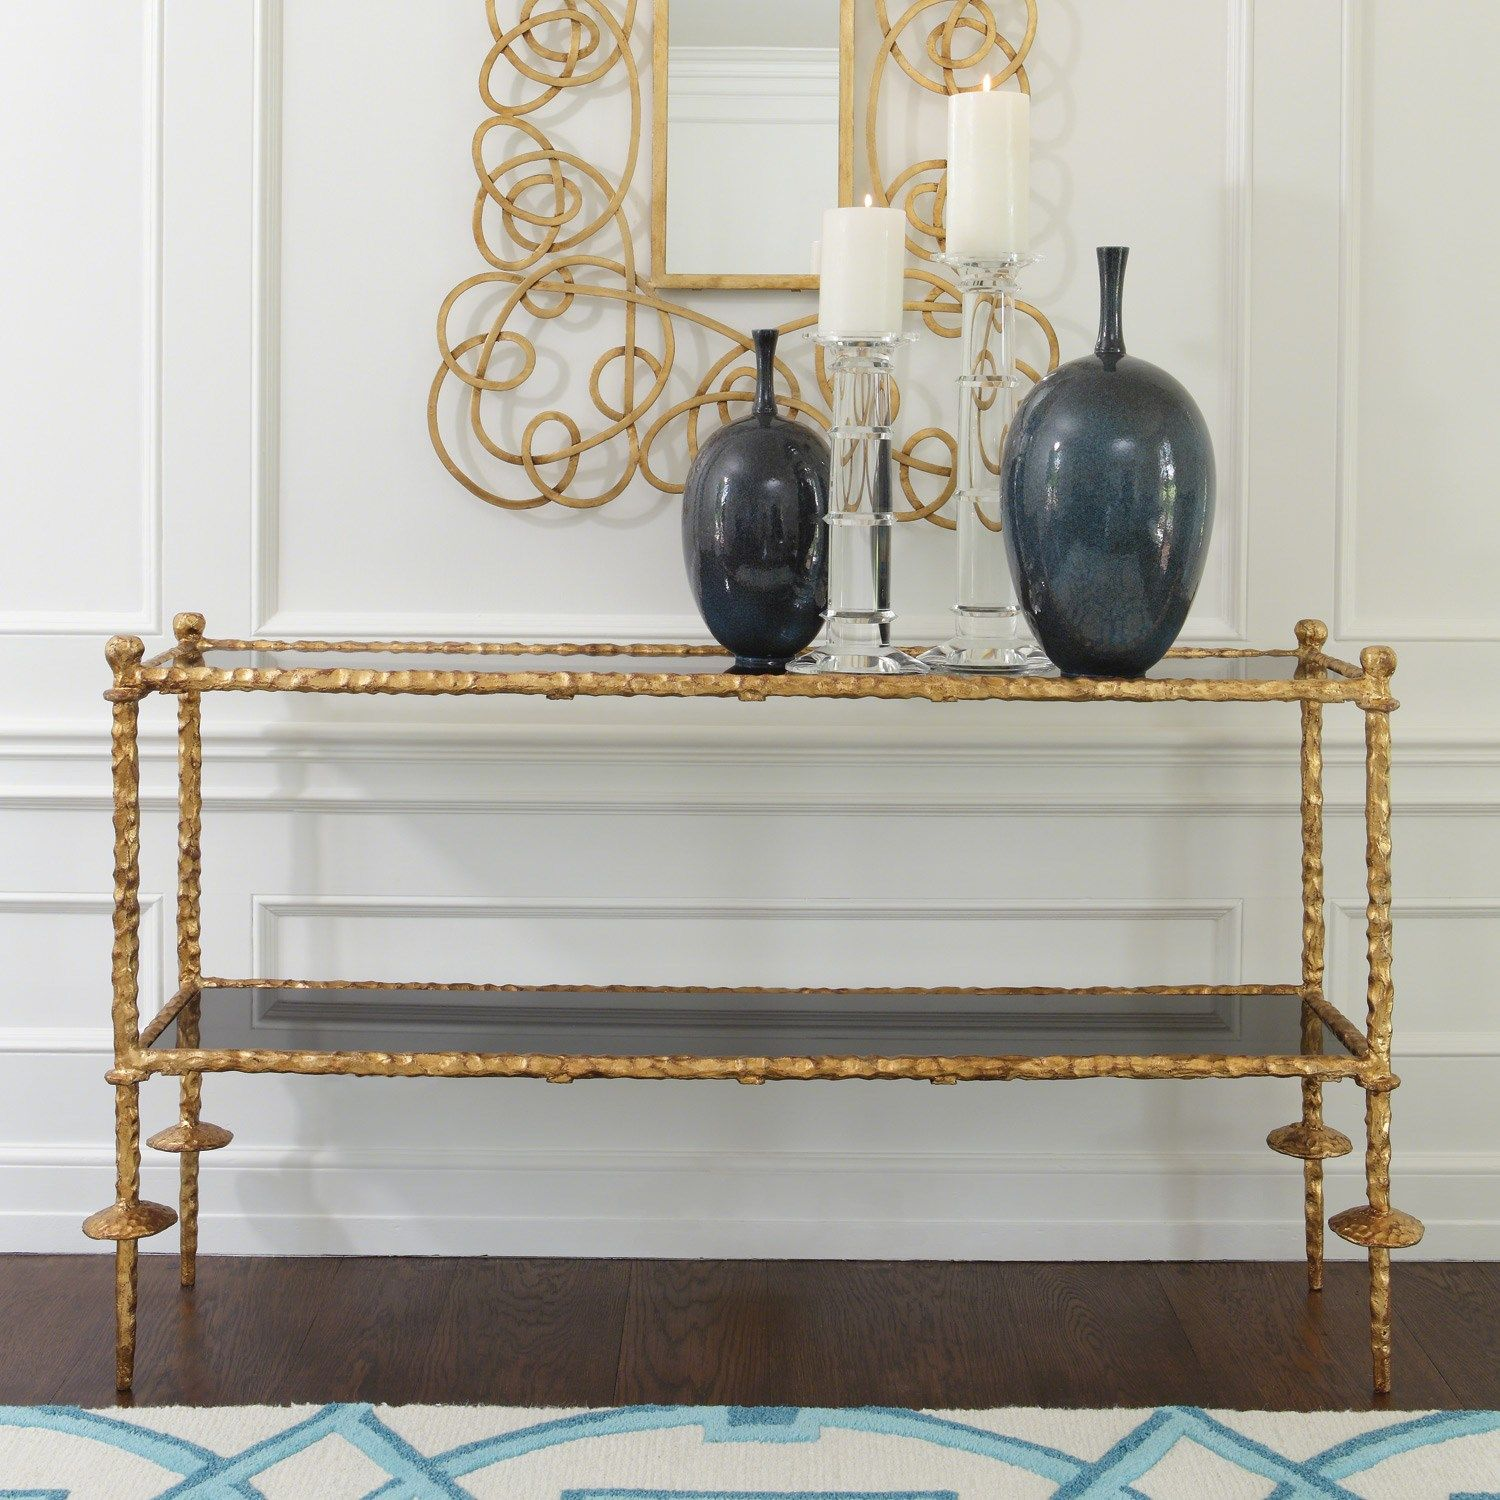 Delicieux Global Views Furniture Chiseled Gold Console Table Found On Layla Grayce # Laylagrayce #globalviews #decor | {Furnishings} | Pinterest | Console  Tables, ...